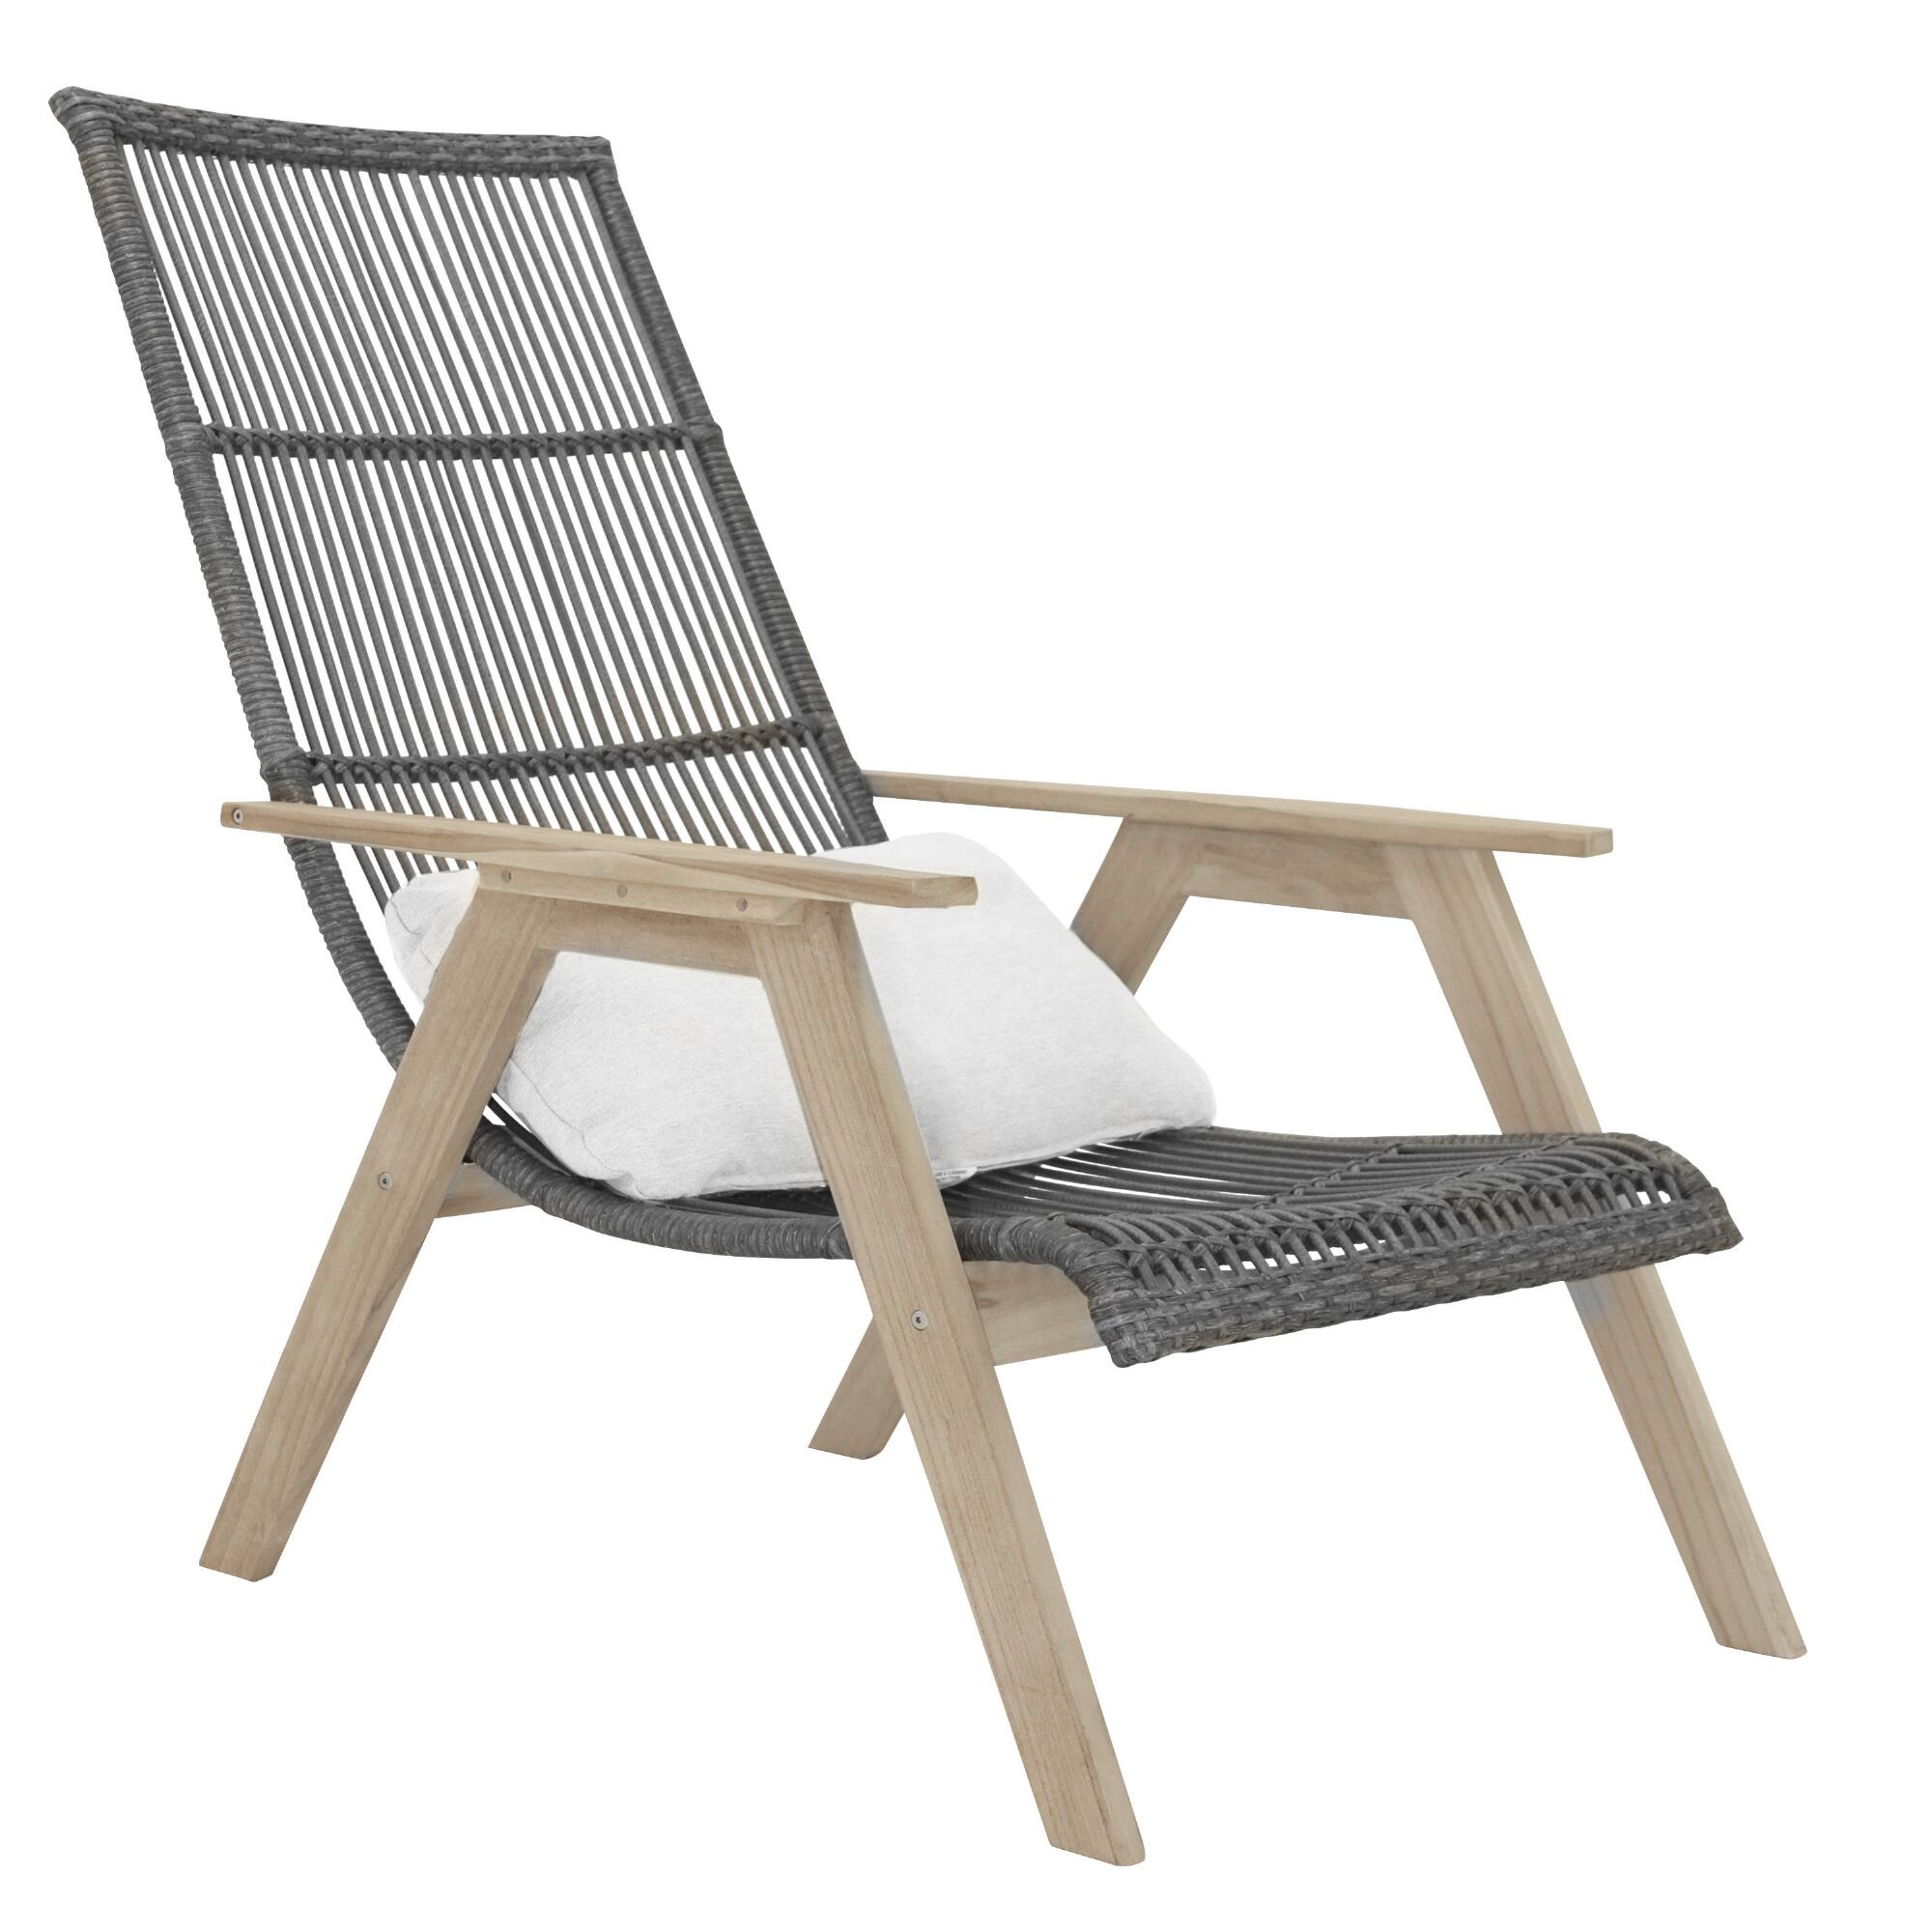 Teak Wood and All Weather Wicker Hakui Chairs Set of 2. Outdoor Chairs  Seating and Sectionals   World Market